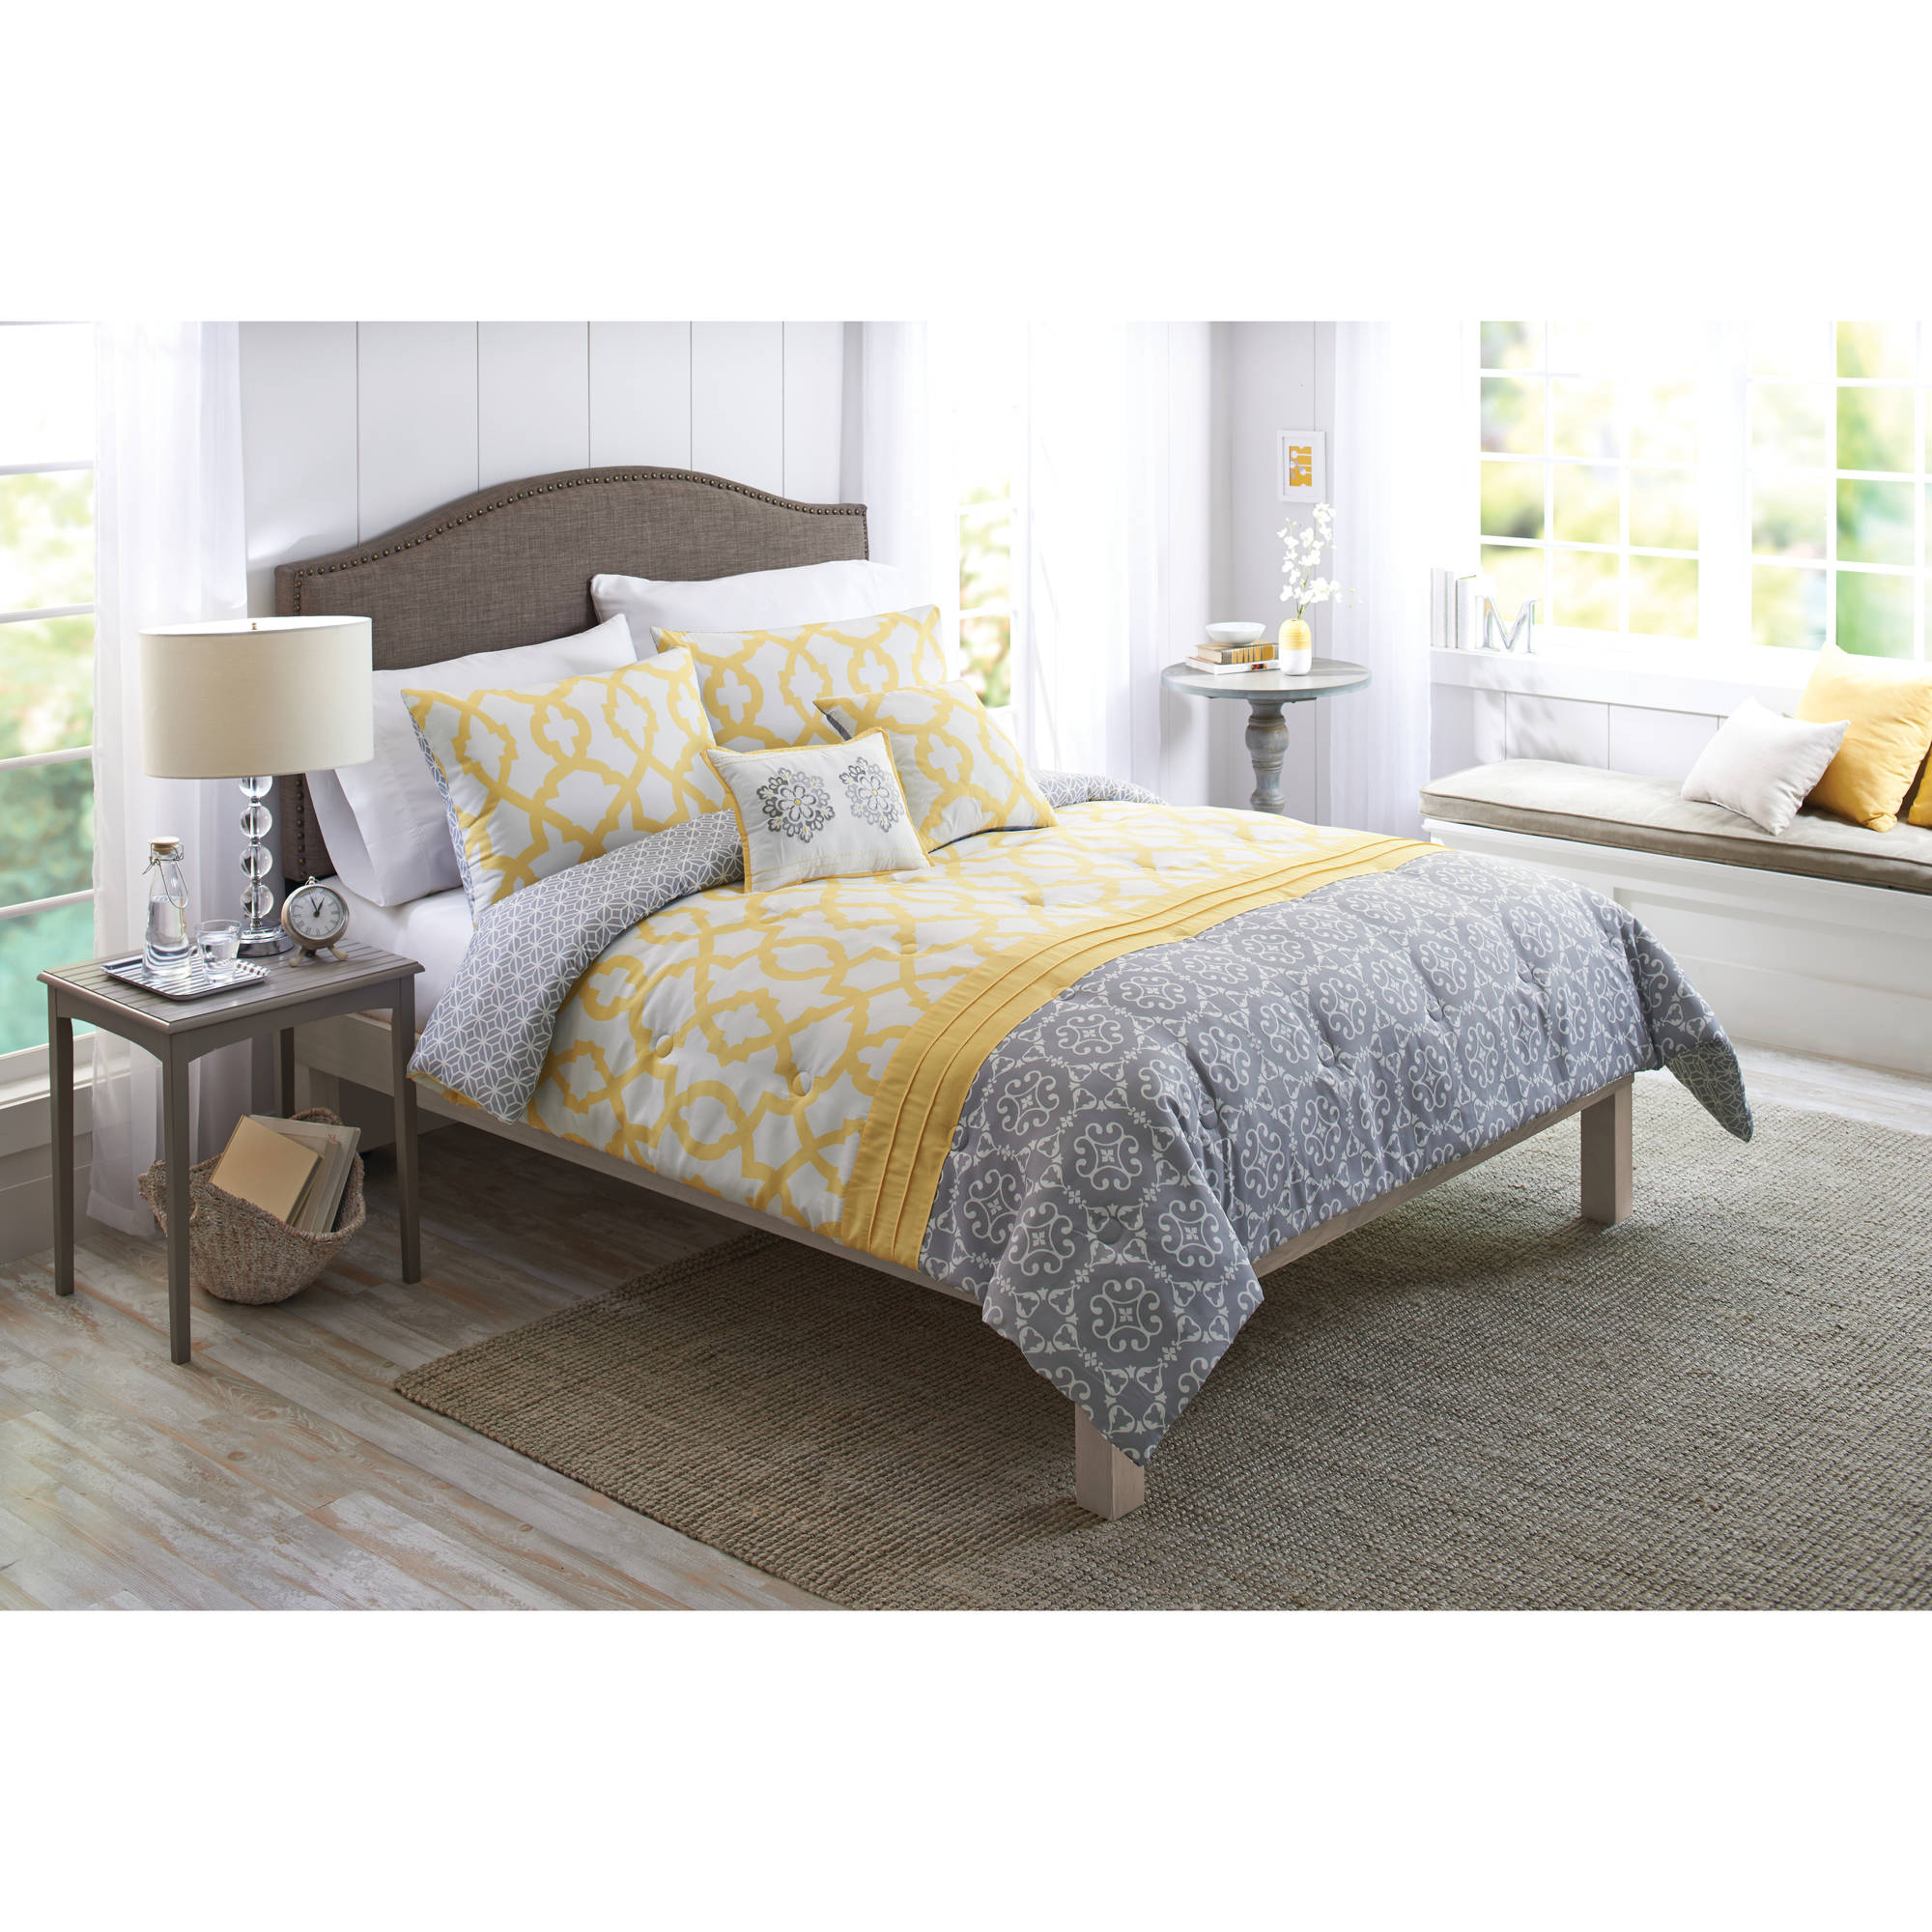 gold bedding for overstock ideas stylish com twin king sears beyond coverlet comforter ross bath size sets and cozy queen grey bedroom set comforters s bed quilts